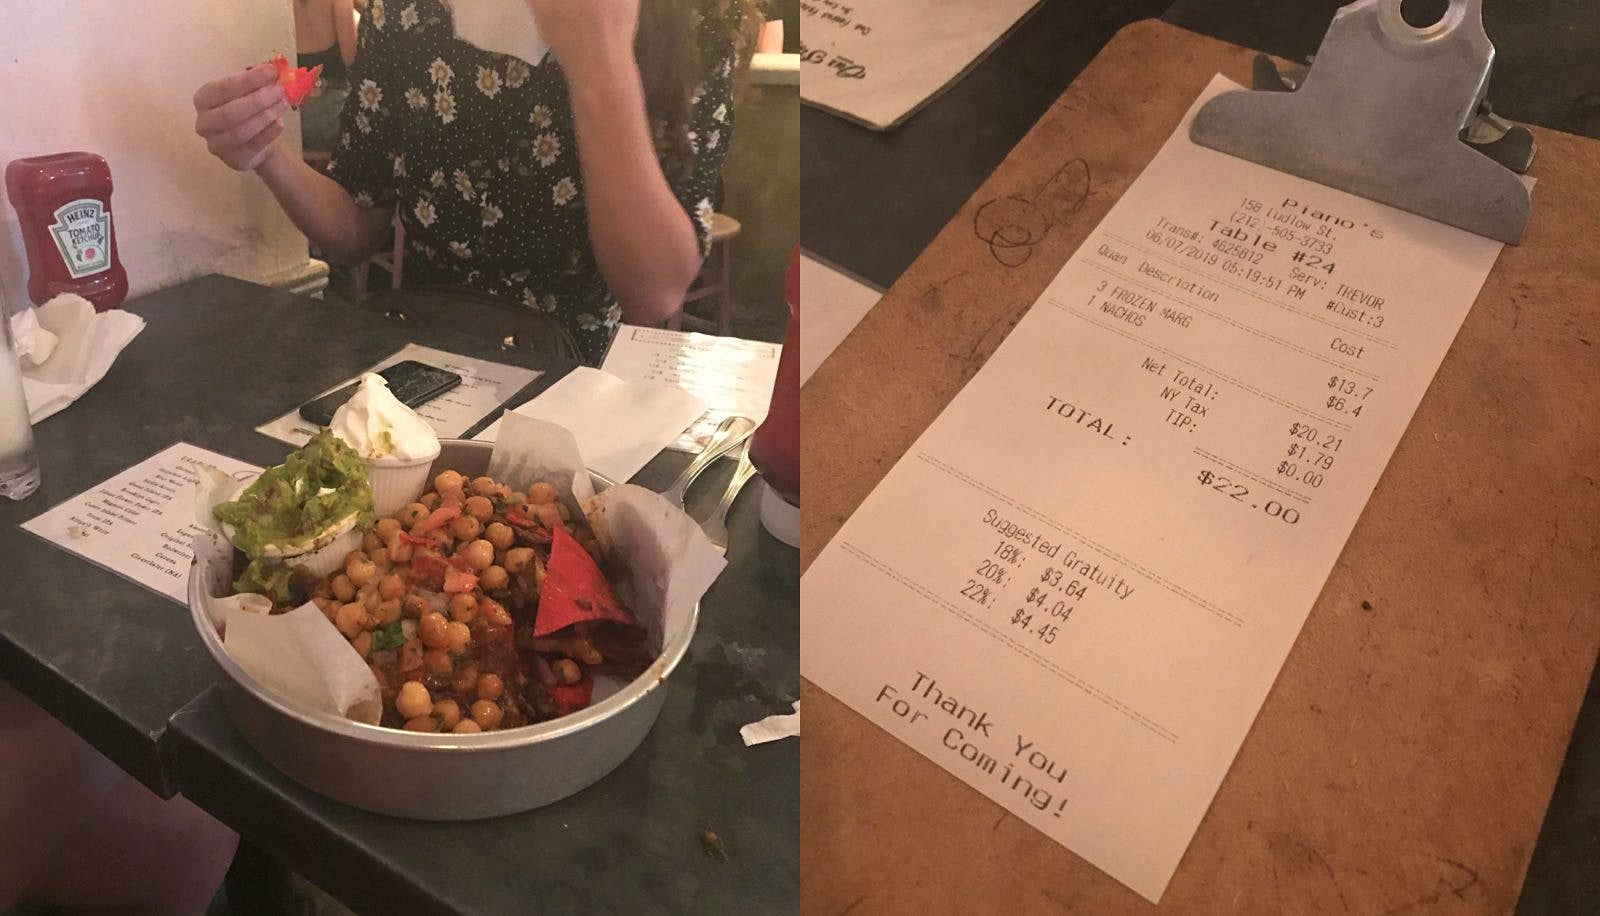 Two images: the image on the left is of a table with a large dish of loaded nachos and two menus. The second image is of the bill for the food and drinks.